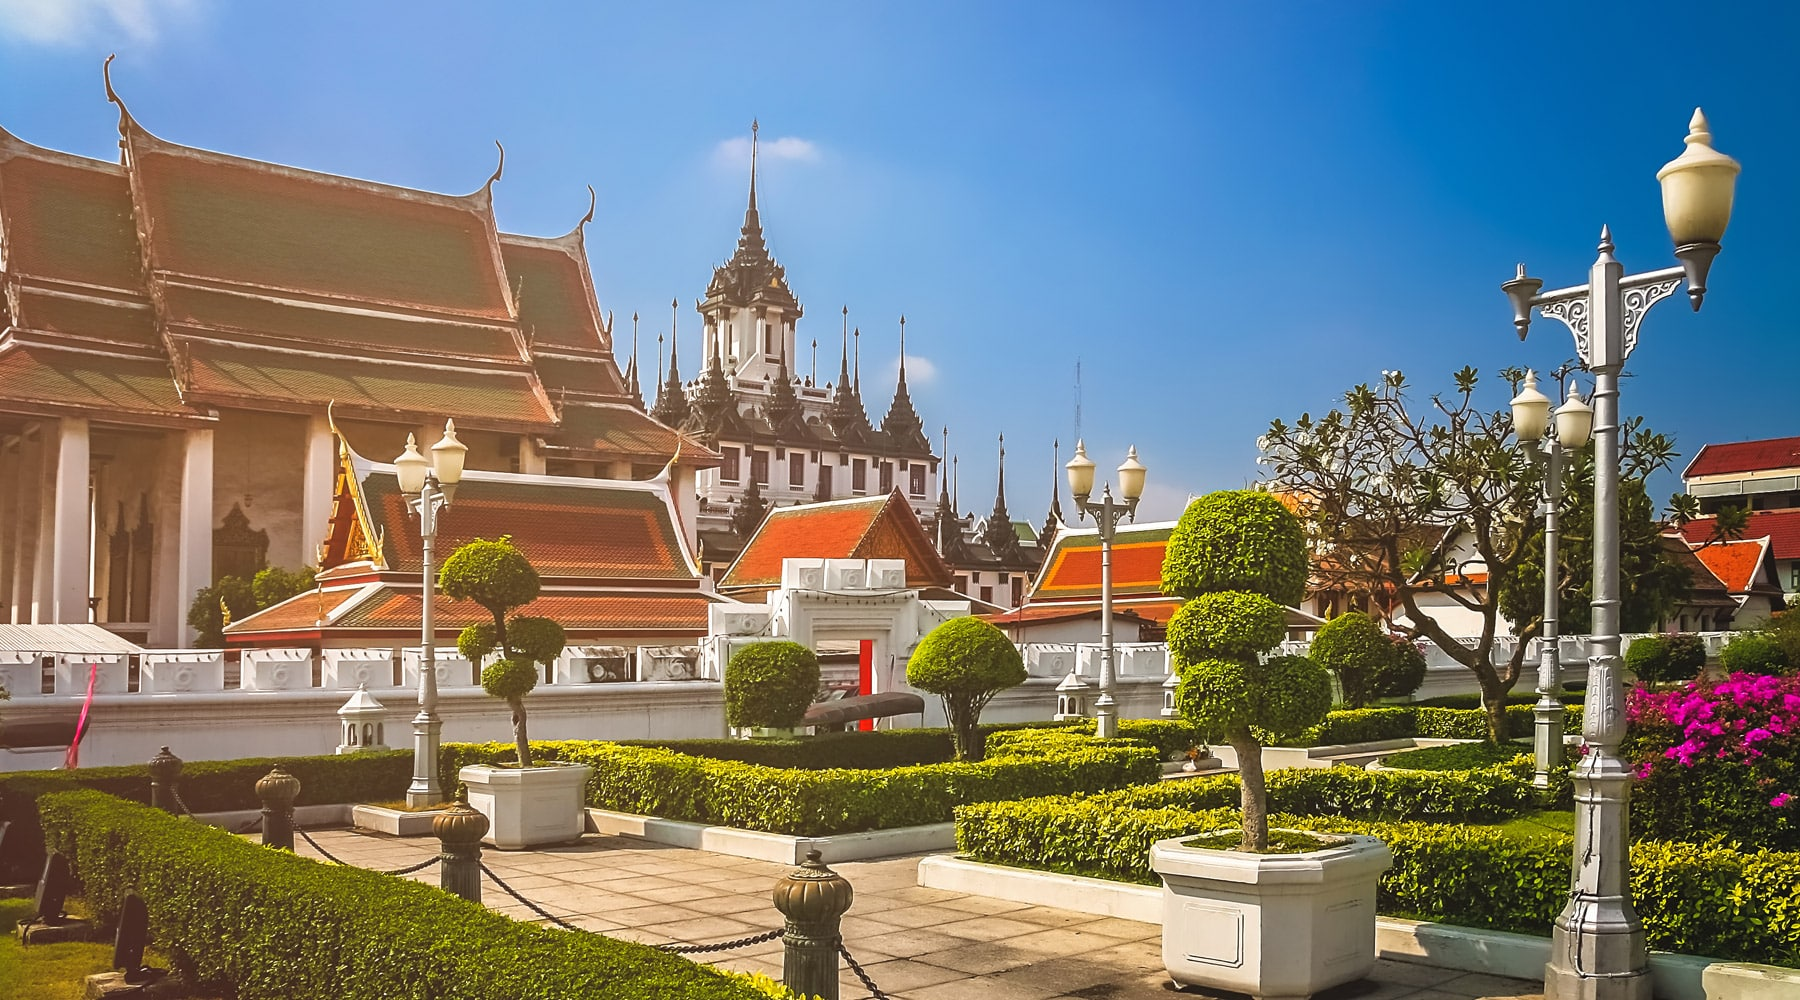 The Grand Palace, Thailand – The Bangkok's Must-See Attraction